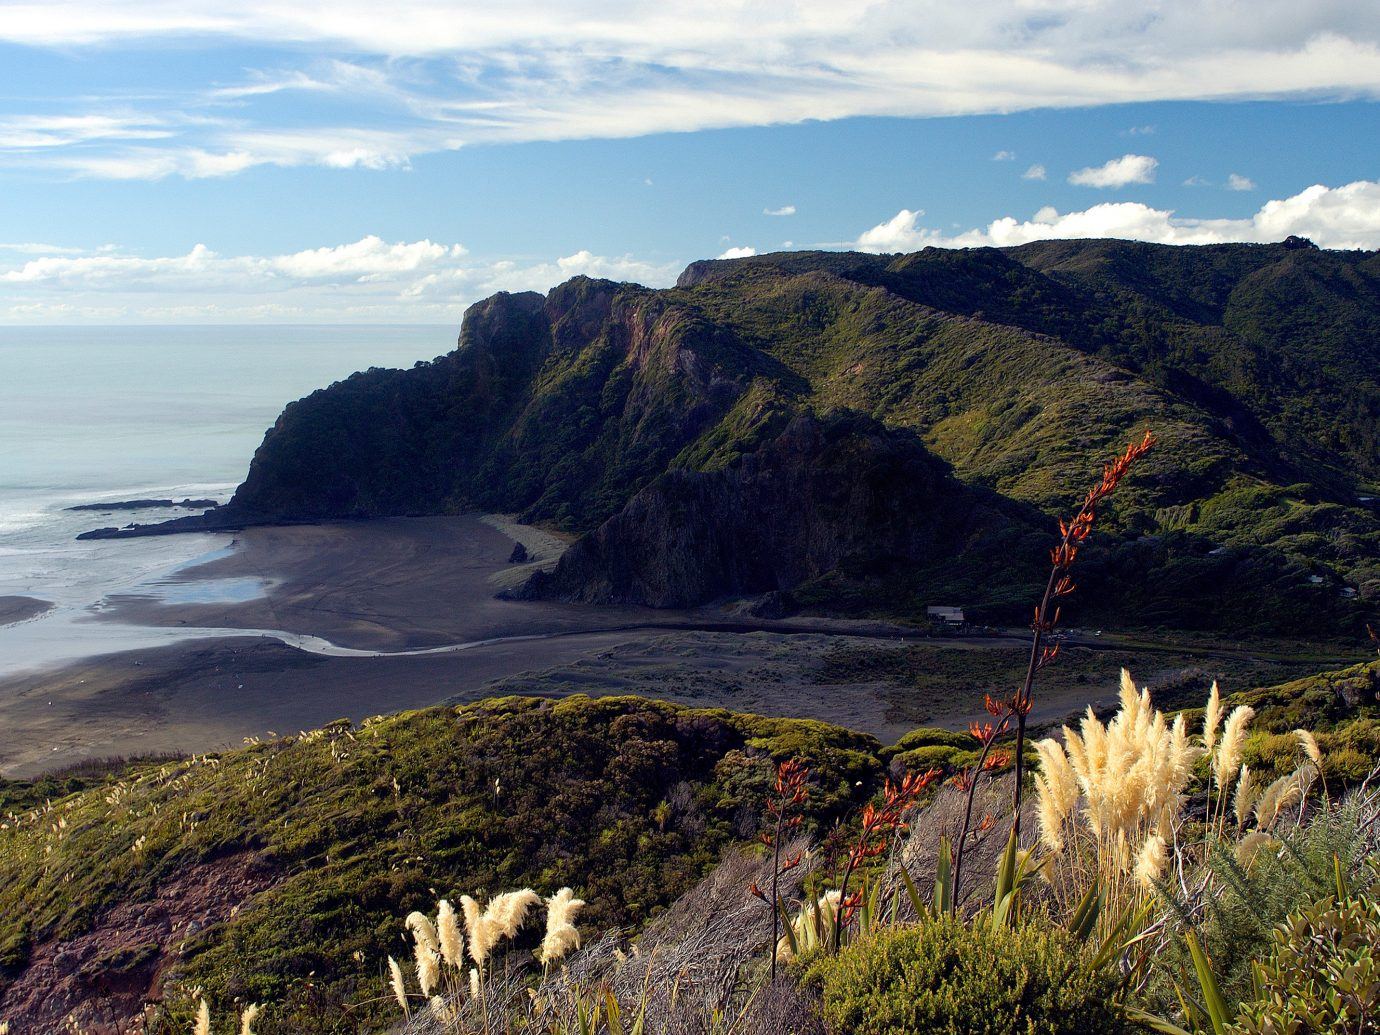 Scenic shot of Karekare Beach